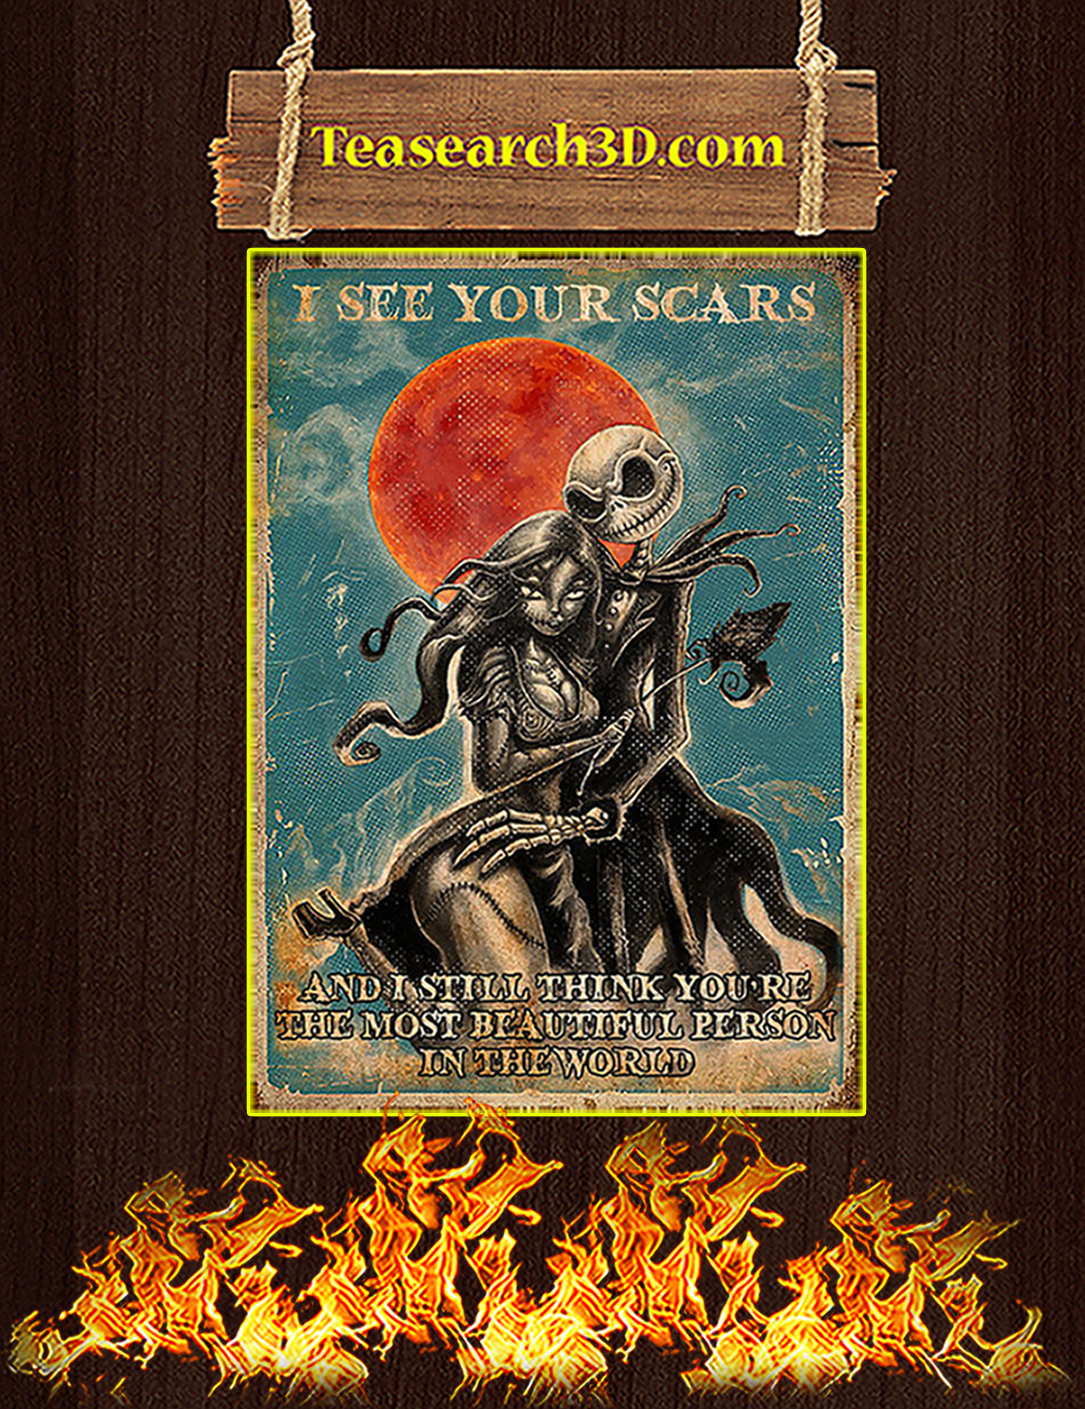 Jack skellington and sally I see your scars poster A2